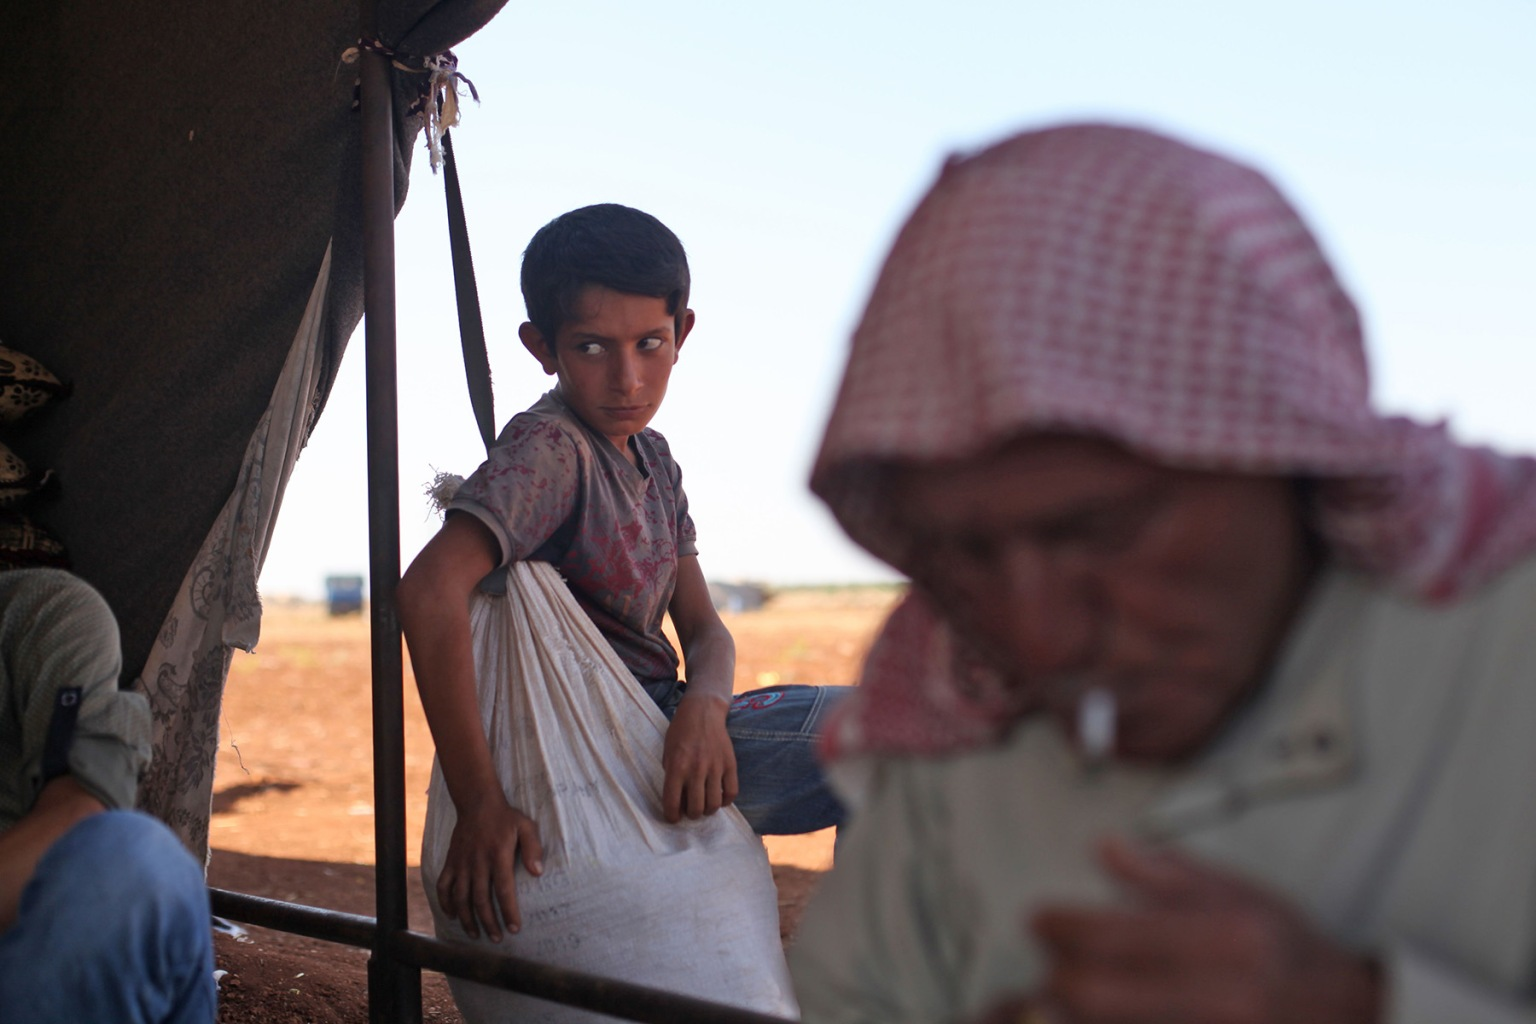 An elderly Syrian lights a cigarette as a child stands behind him outside a tent at a camp for displaced civilians fleeing from advancing Syrian government forces near the village of Sarman in the rebel-held northwestern Idlib province on Sept. 5. AMER ALHAMWE/AFP/Getty Images